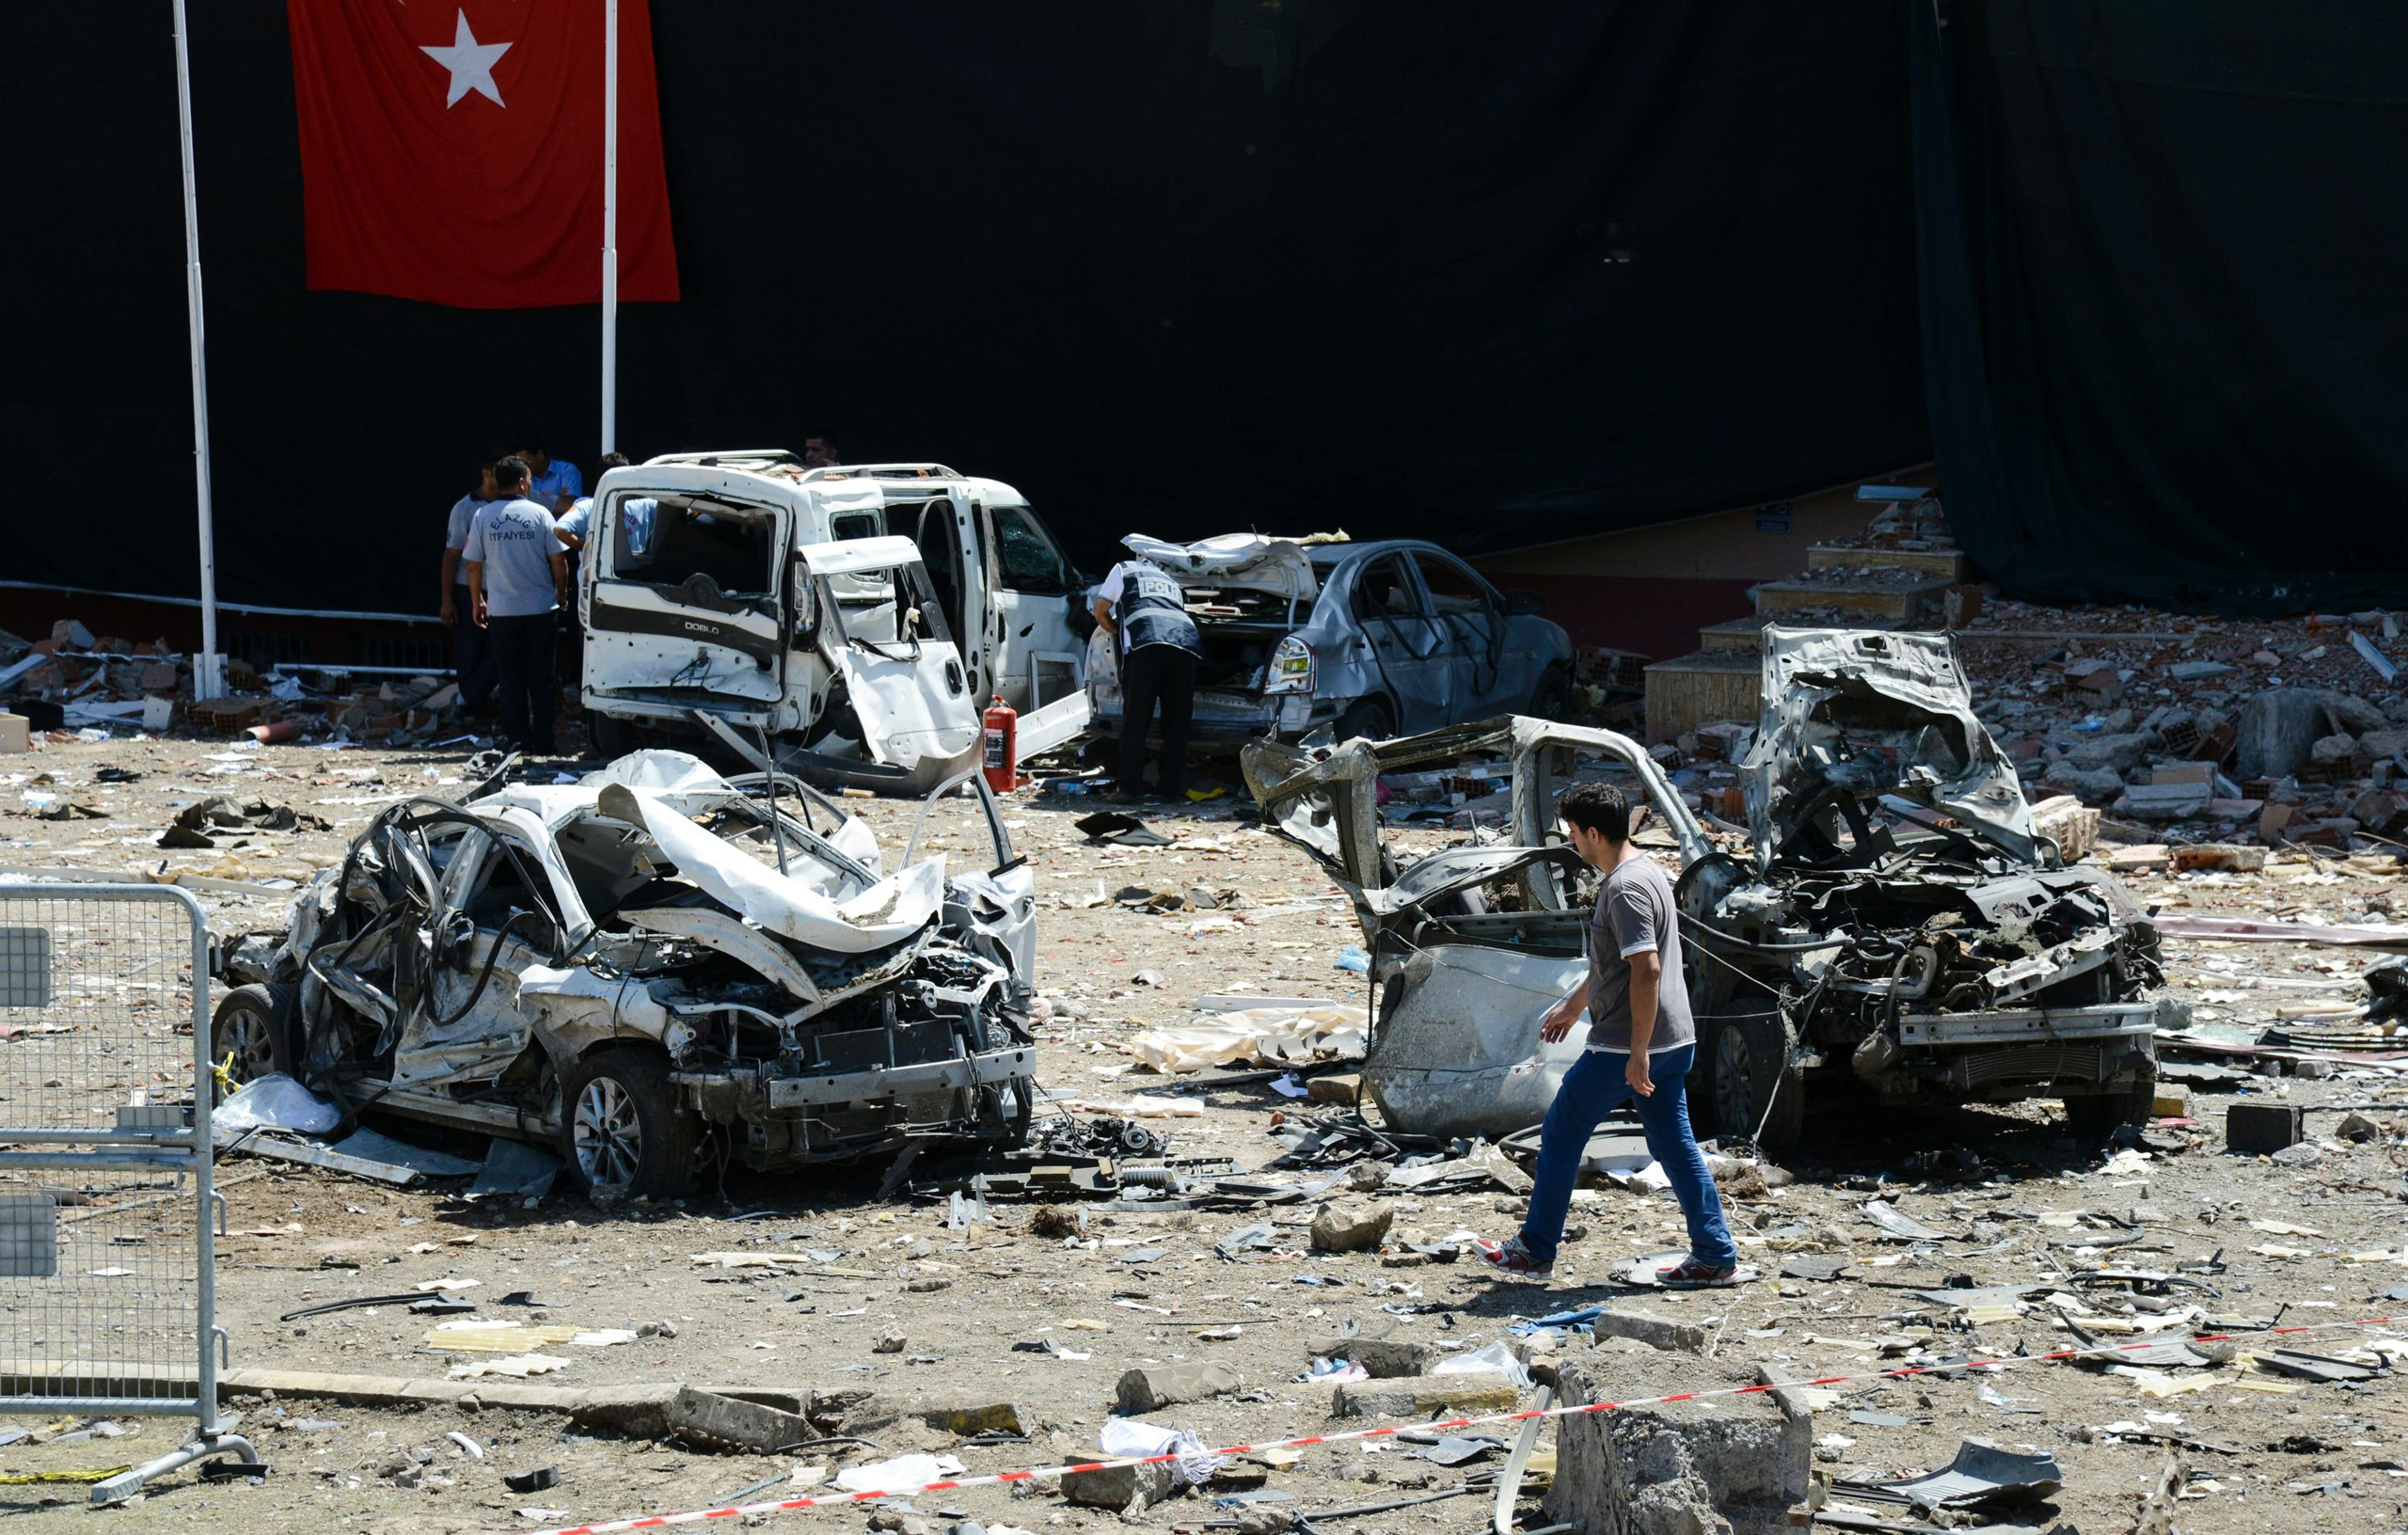 Turkish rescue workers stand by the wreckage of a vehicle as a Turkish police officer  inspects a destroyed car and a man walks among the remains at the blast scene following a car bomb attack on a police station in the eastern Turkish city of Elazig, on Aug. 18, 2016.